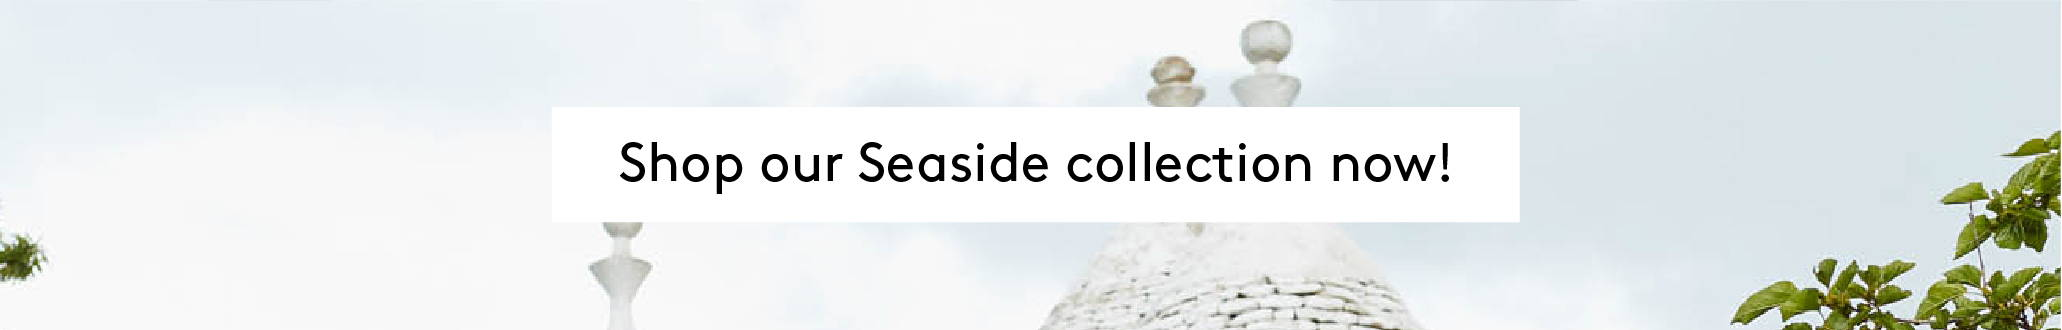 Shop our SEASIDE collection now!